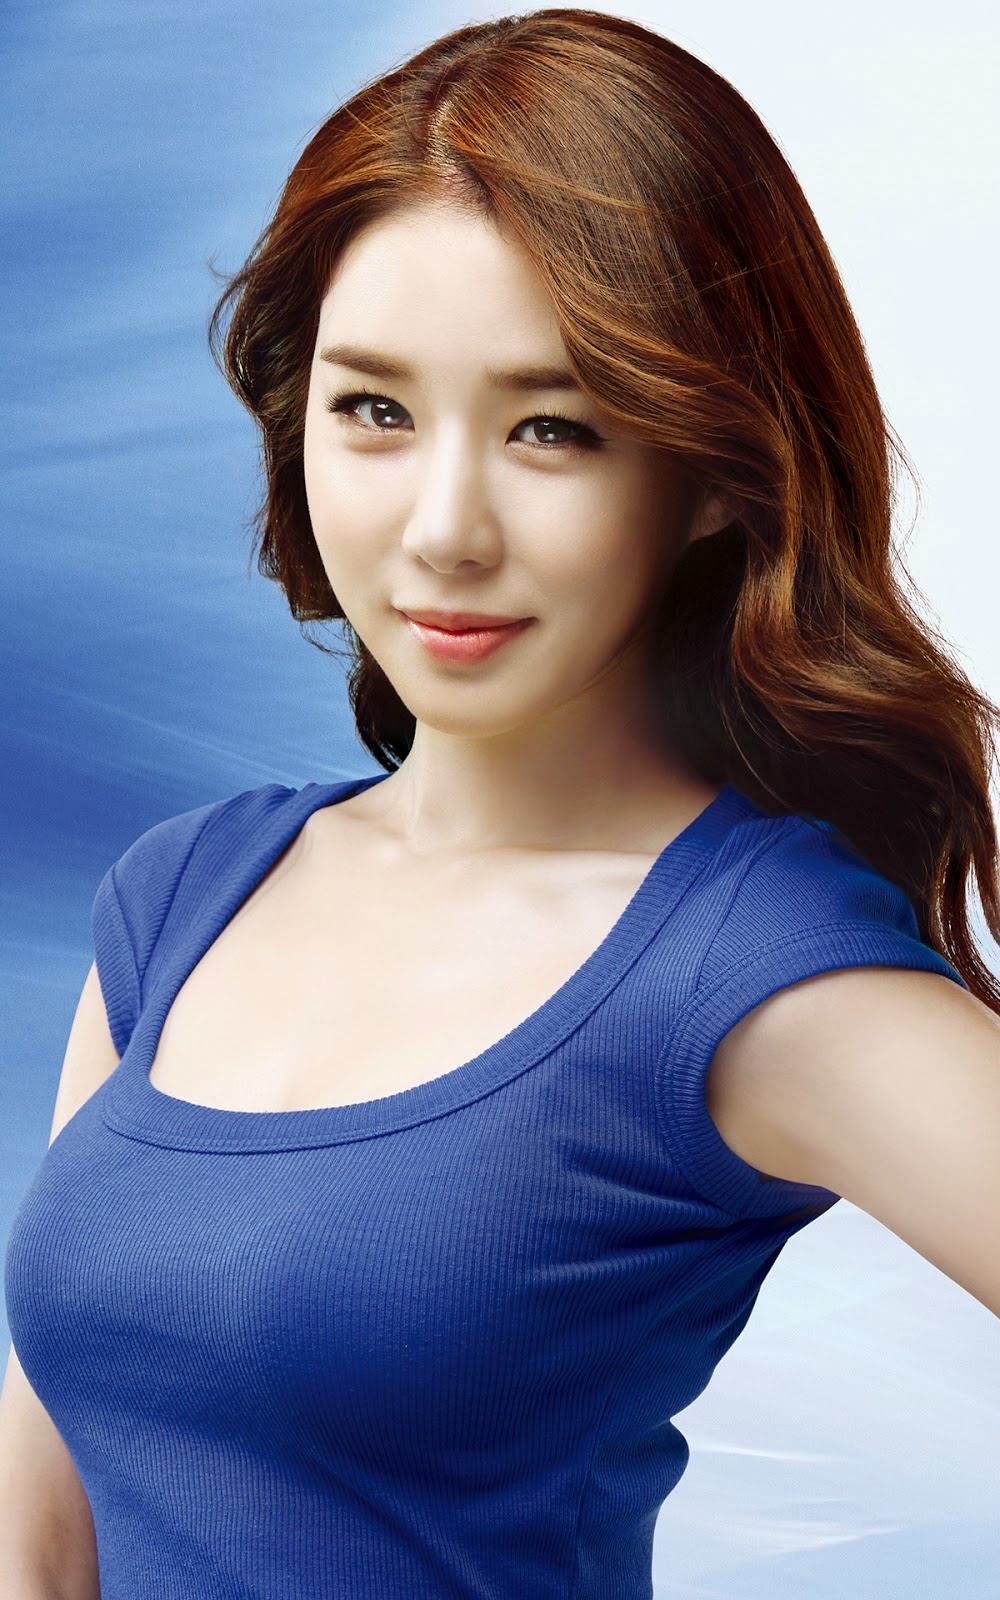 Body Beautiful Top Celebrity Of Korea